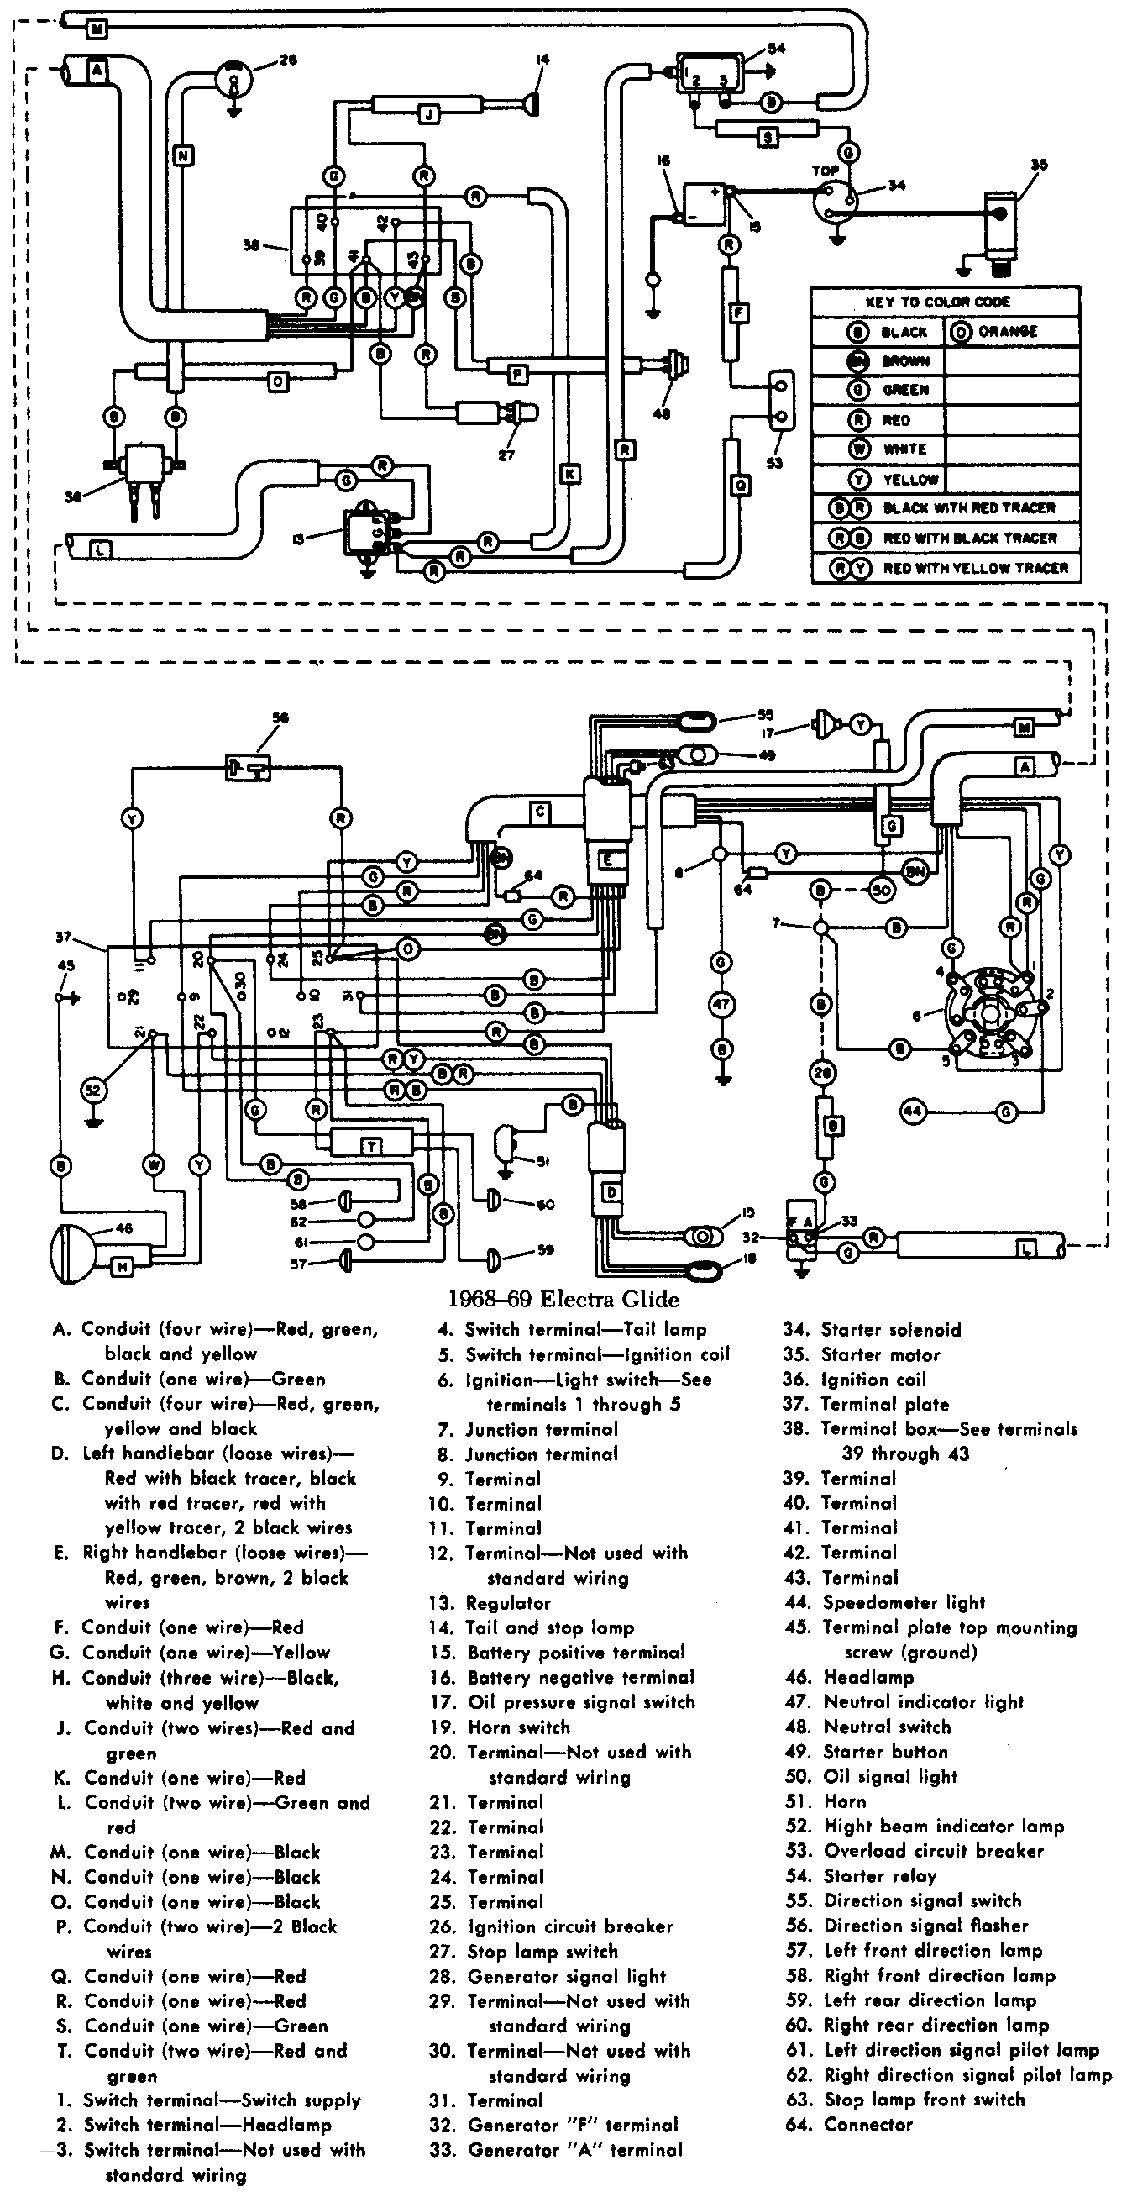 harley stereo wiring harness wiring diagram list wiring harness diagram on harley davidson wiring harness for radio